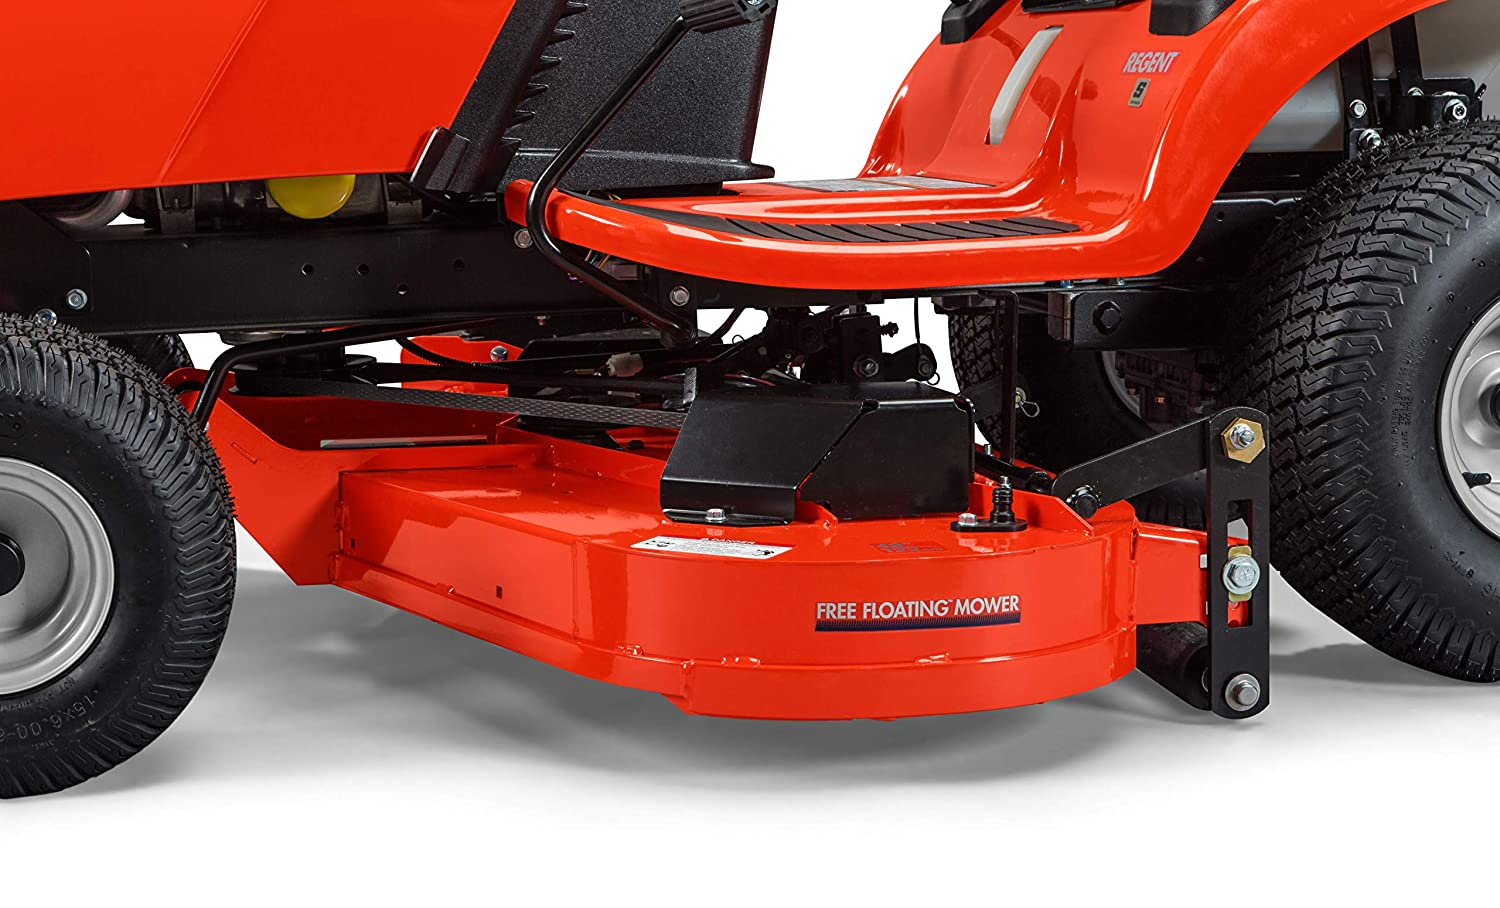 Simplicity Lawn Tractor Reviews 2019 Read This Before You